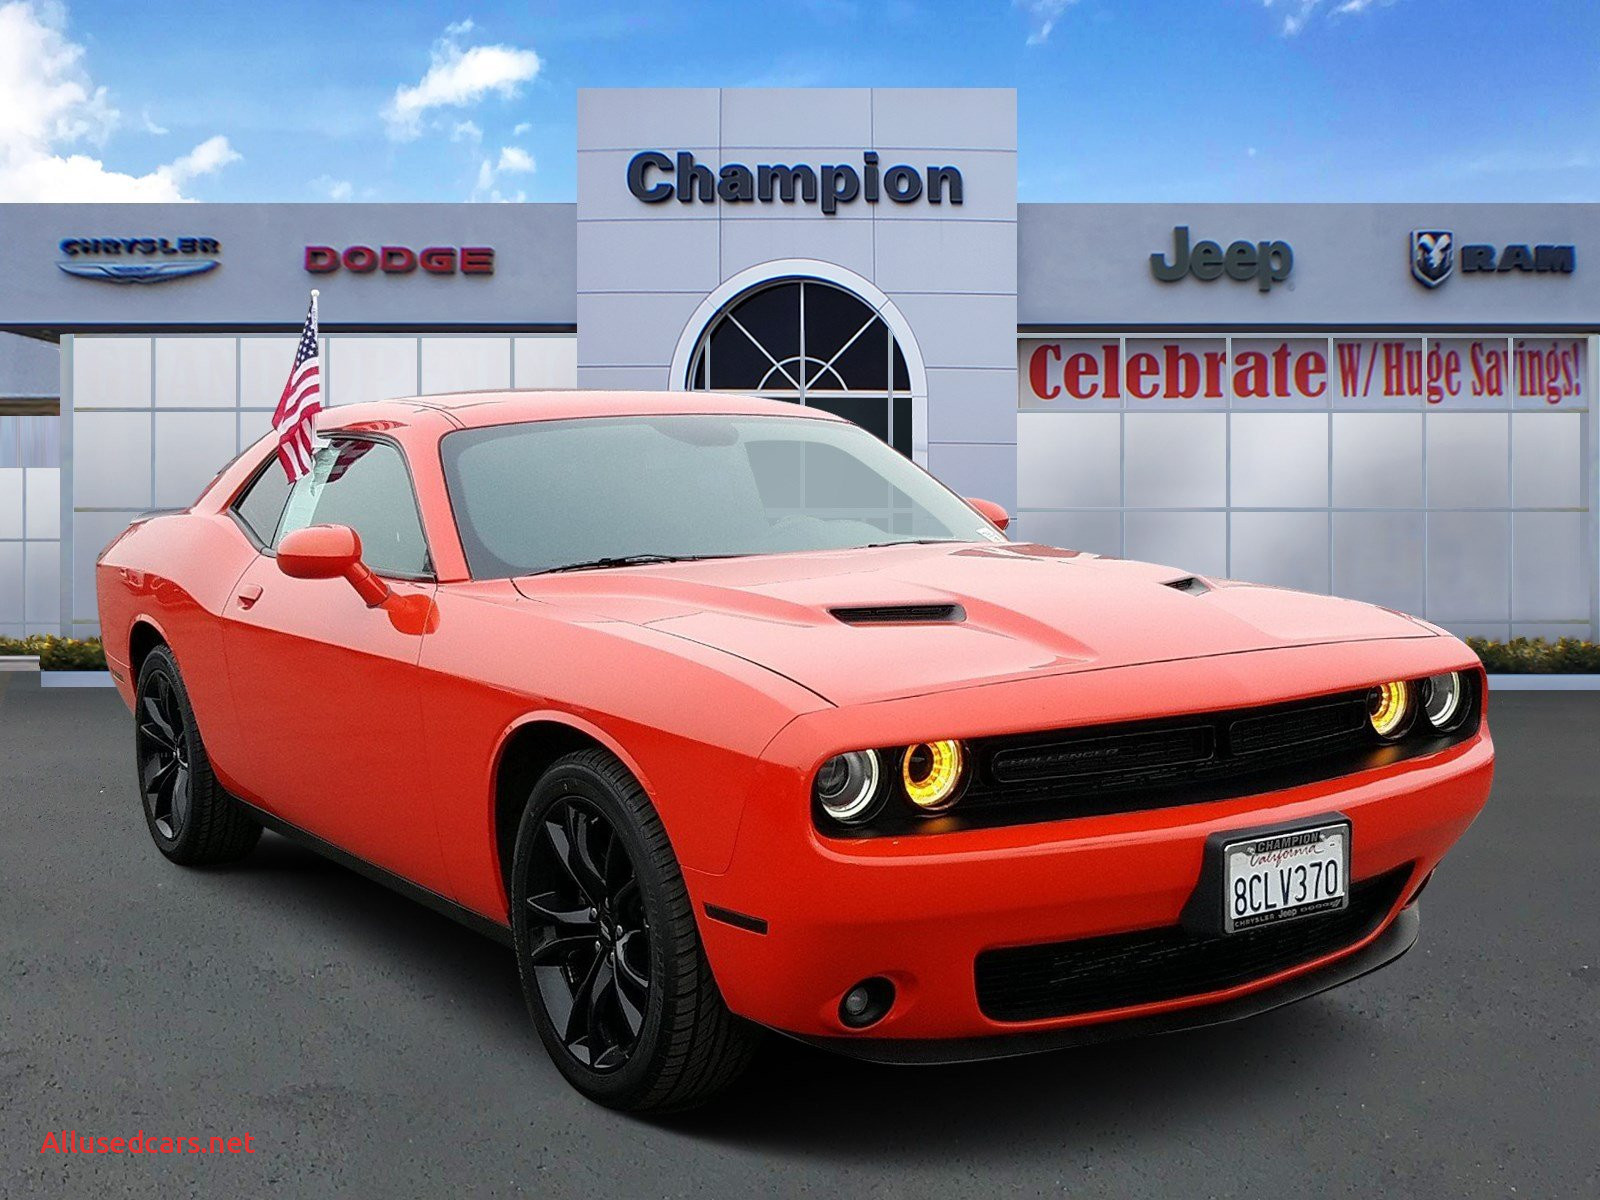 2018 Dodge Challenger Sxt Best Of Pre Owned 2018 Dodge Challenger Sxt with Navigation